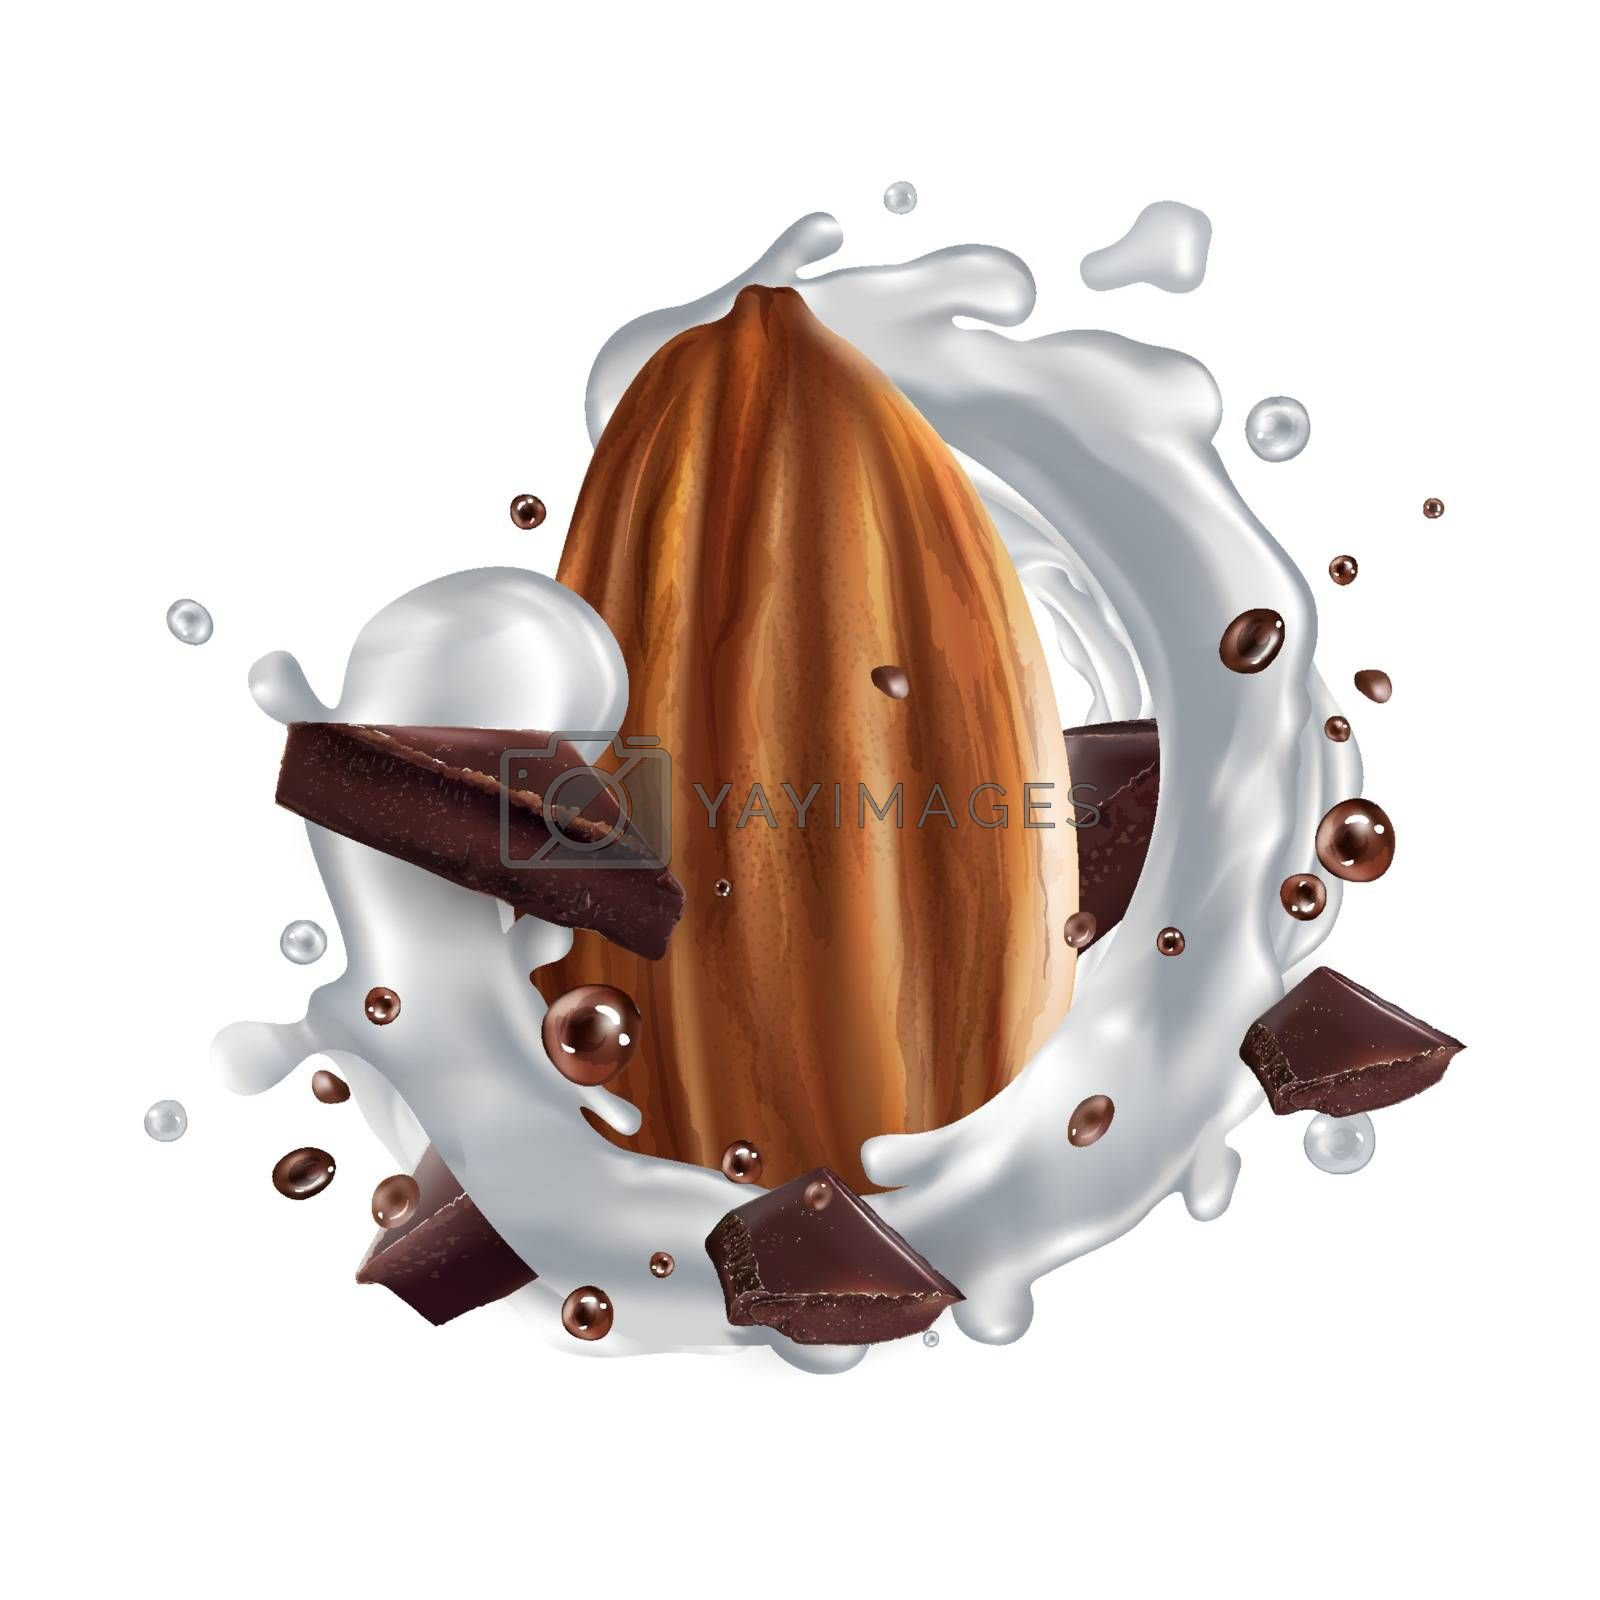 Almond, pieces of dark chocolate and a splash of milk. Realistic vector illustration.